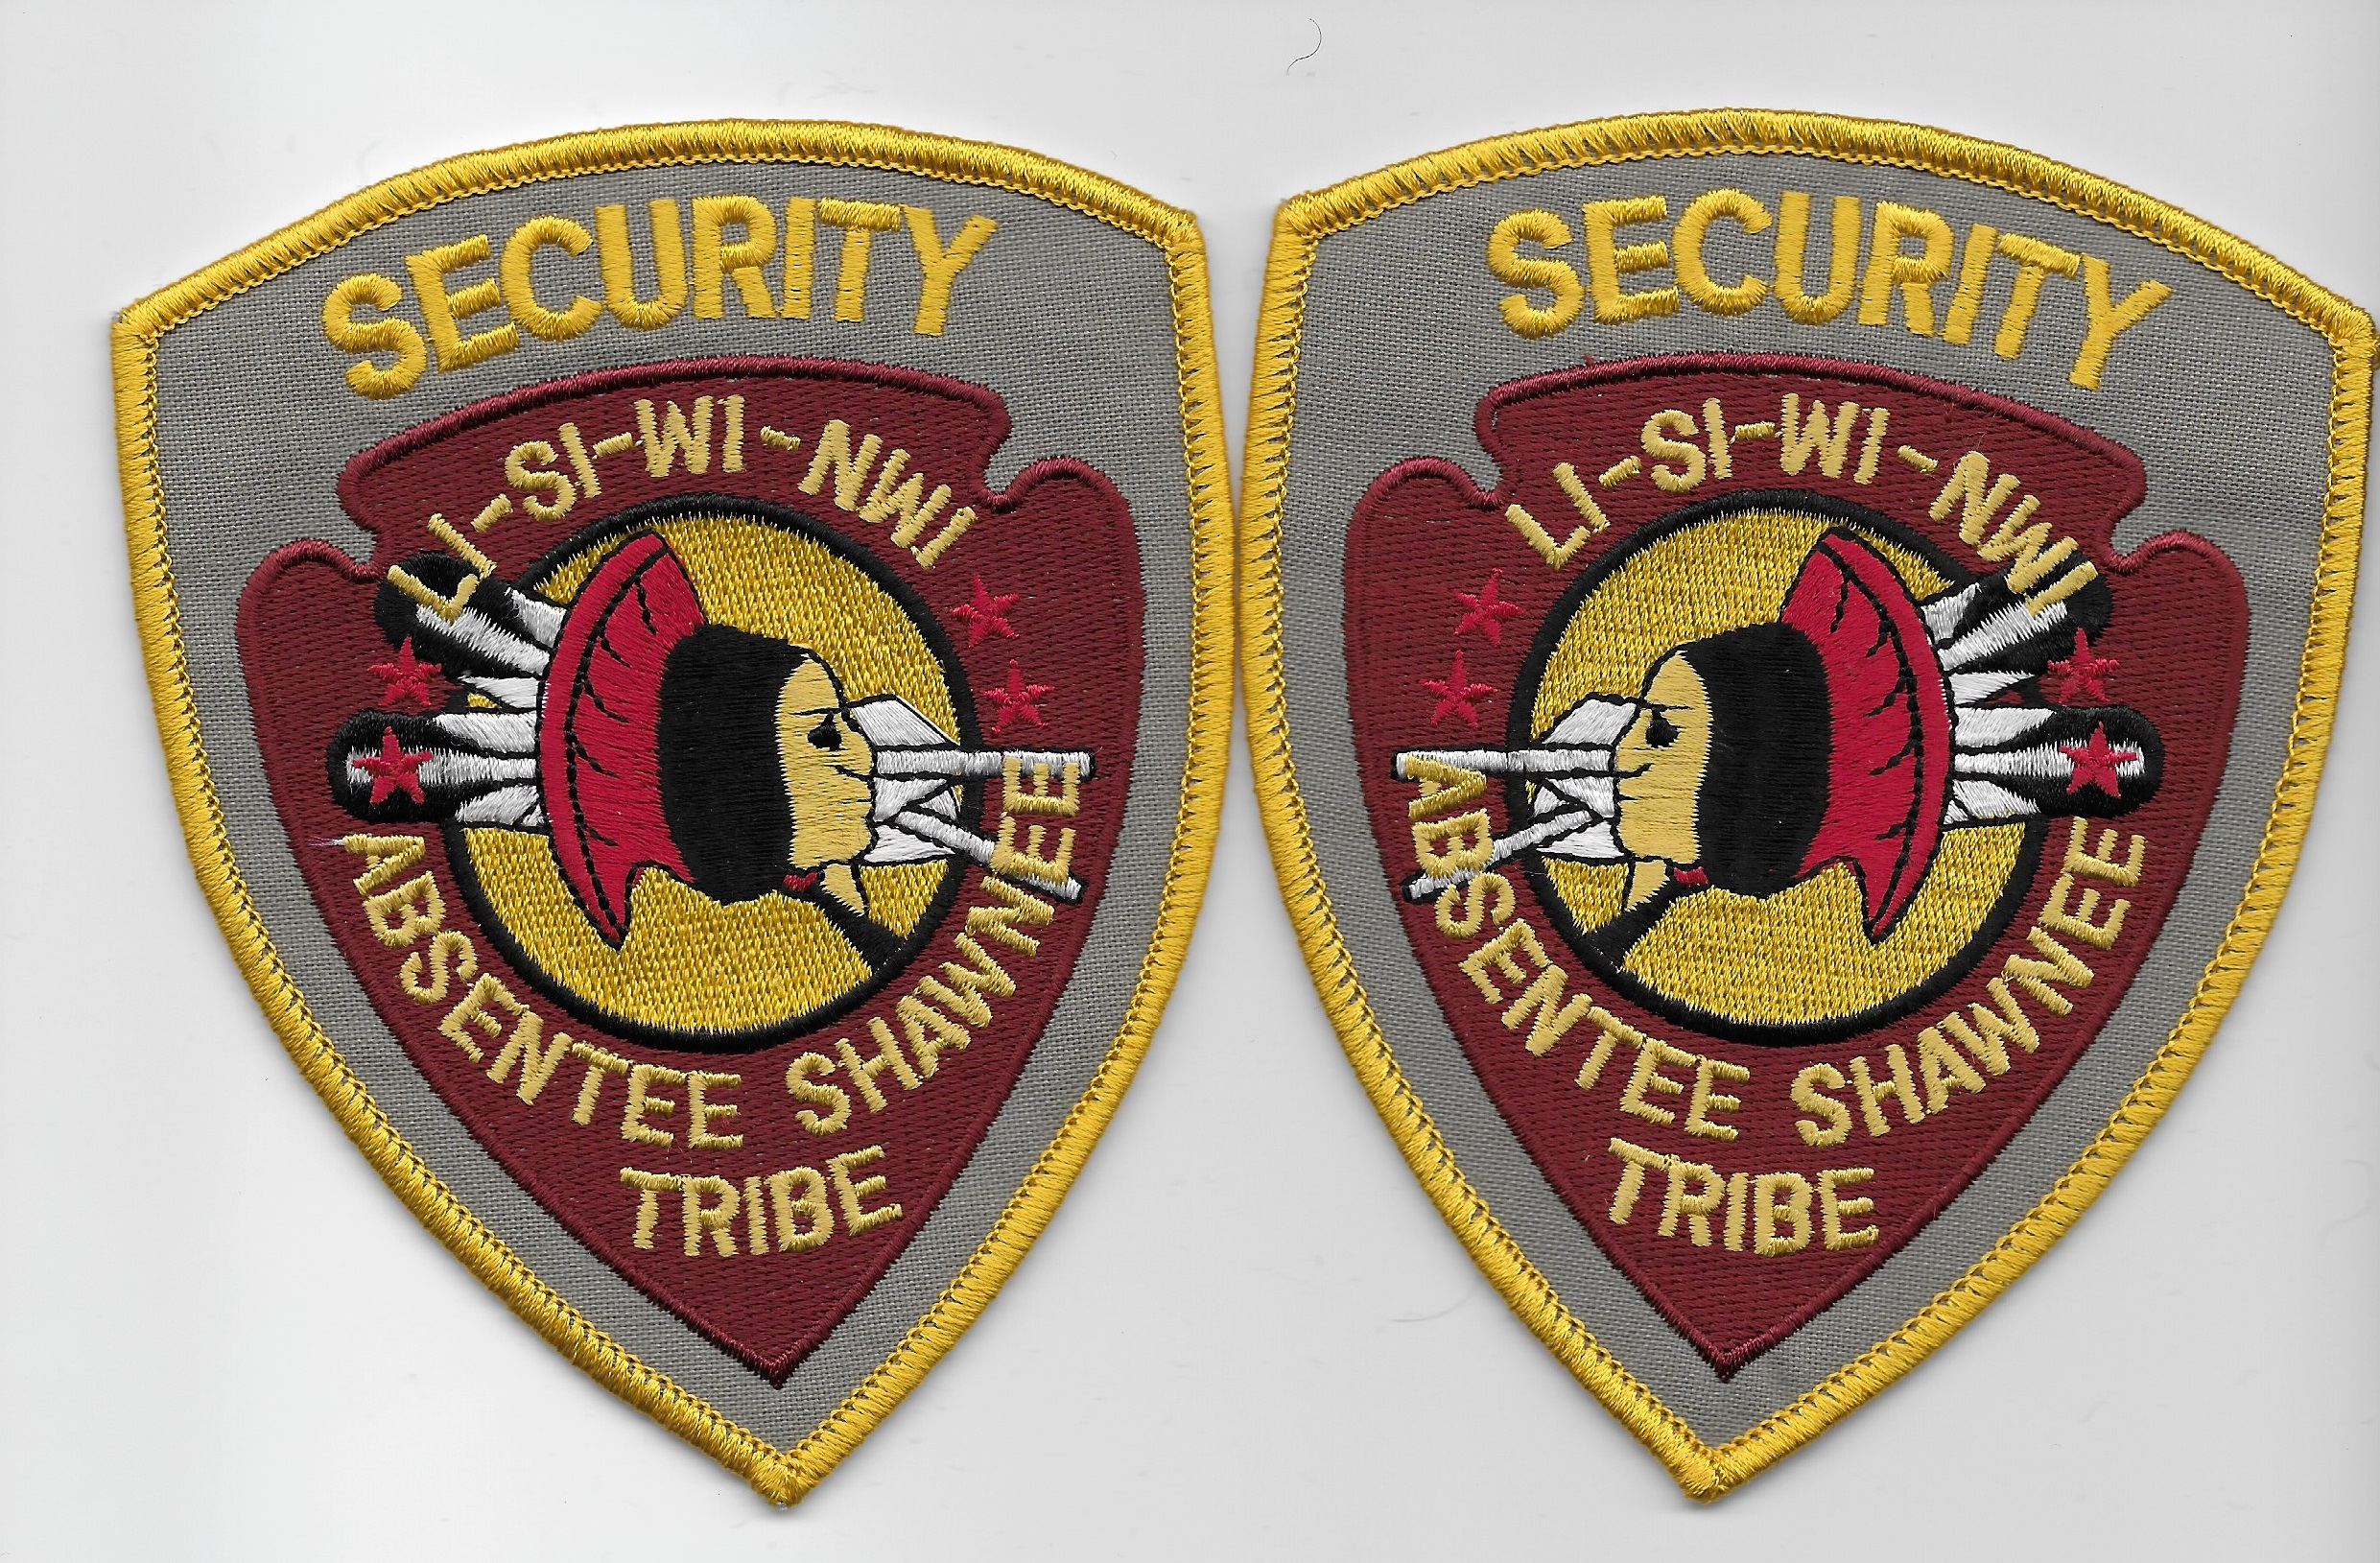 Absentee Shawnee Tribal Security Mirrored Set OK